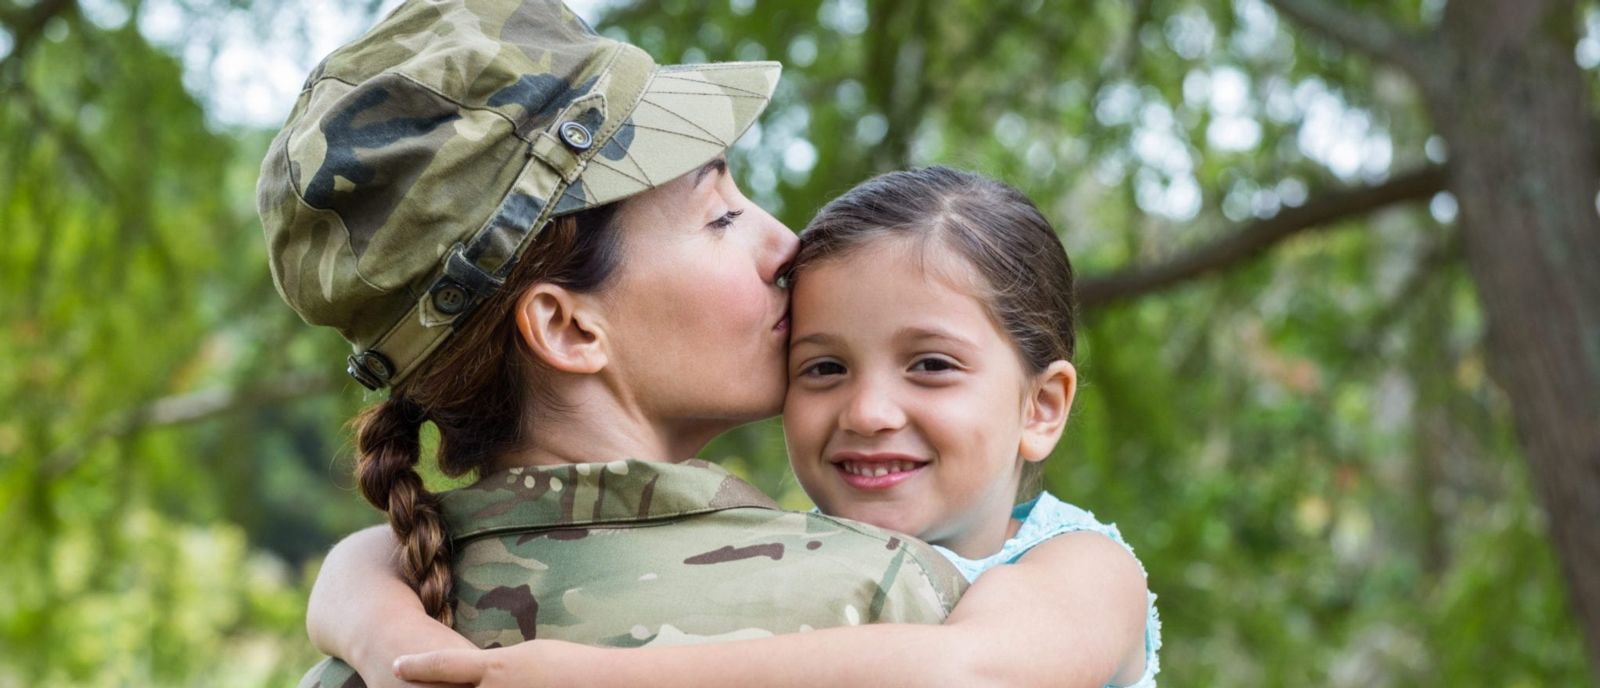 New Mexico military woman kissing daughter on the cheek.